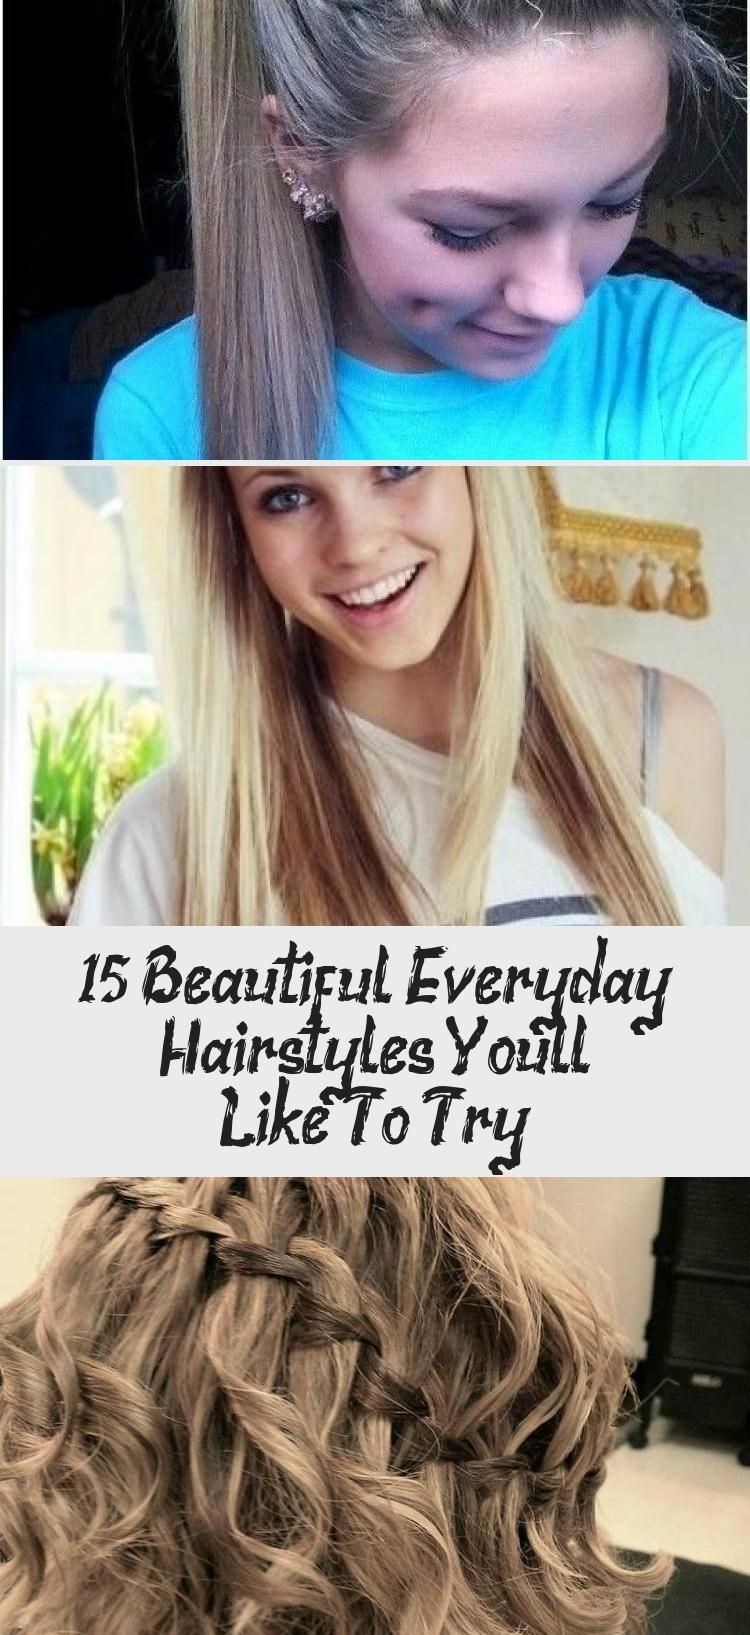 15 Beautiful Everyday Hairstyles You'll Like To Try | Hair styles, Easy summer hairstyles ...